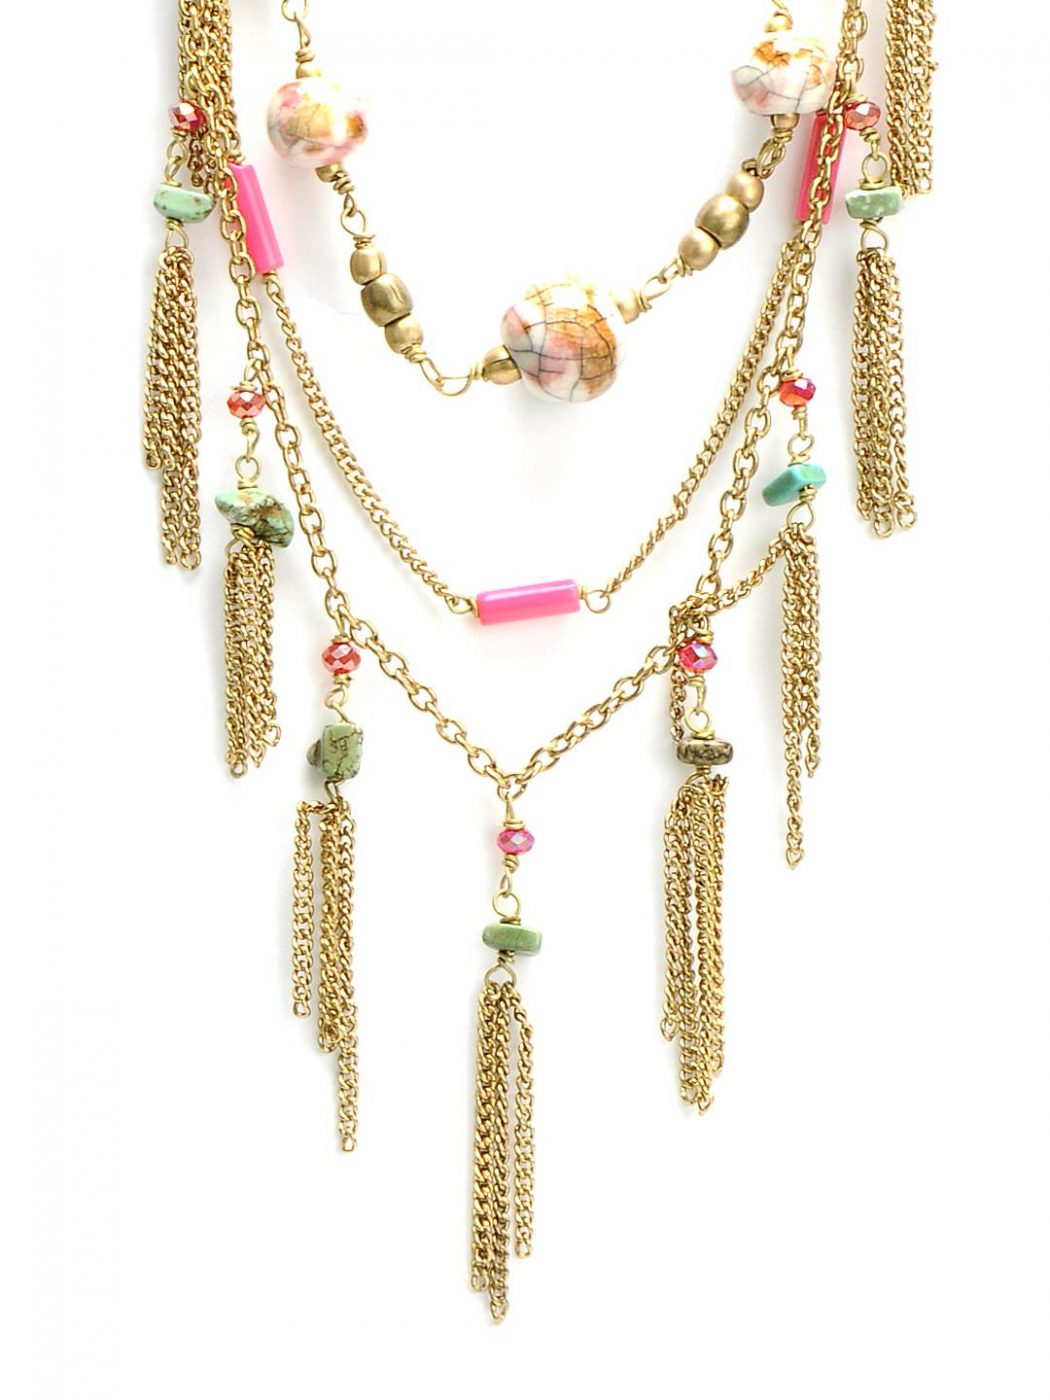 Ivory-Tag-Women-Pink-and-Golden-Necklace_cd2f673d642805d25aeb83dffeedfef0_images_1080_1440_mini Top Jewelry Trends That will Amaze YOU!